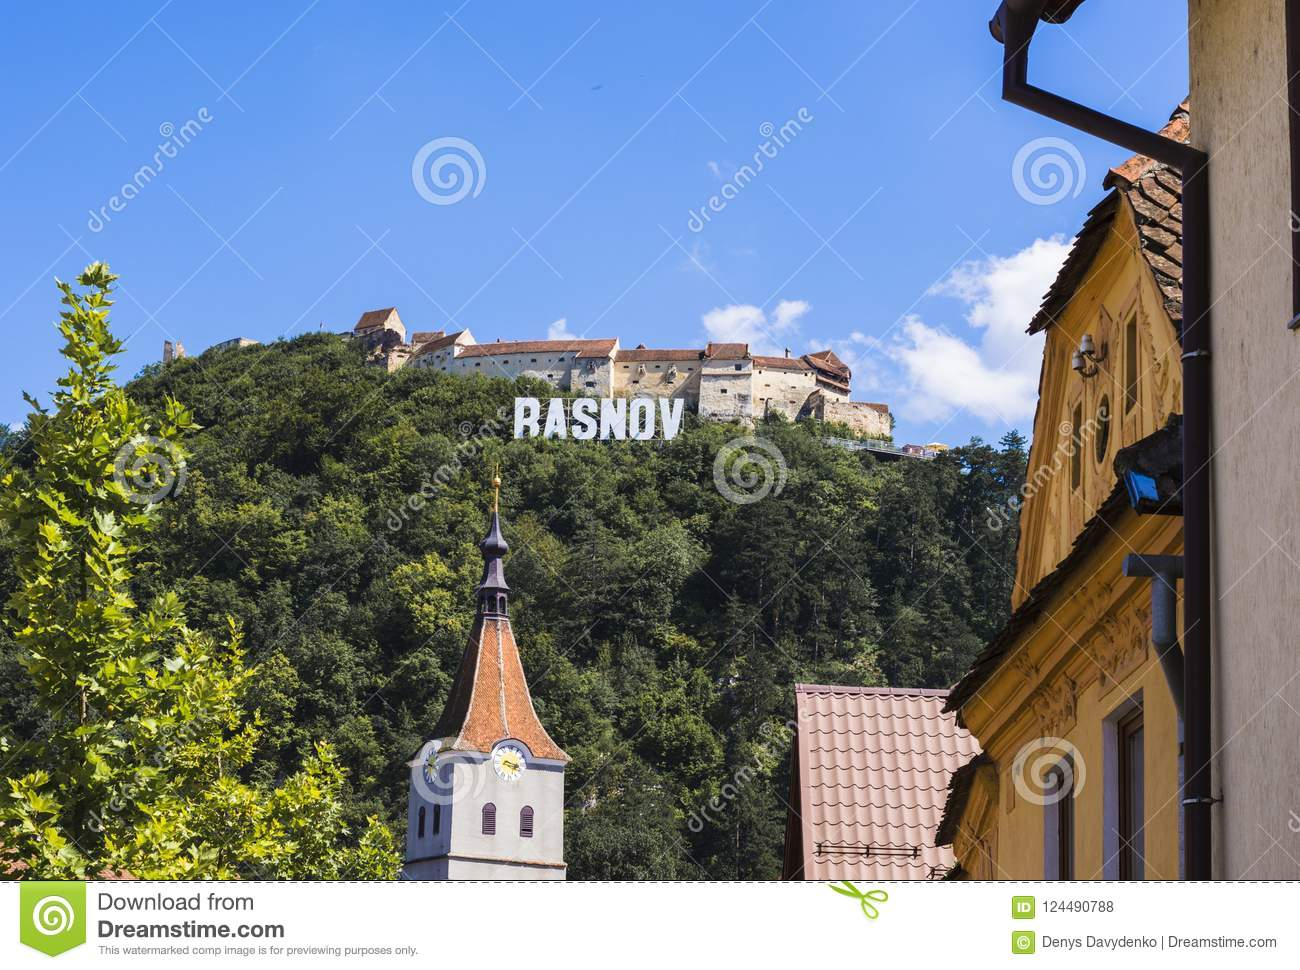 Town of Rasnov